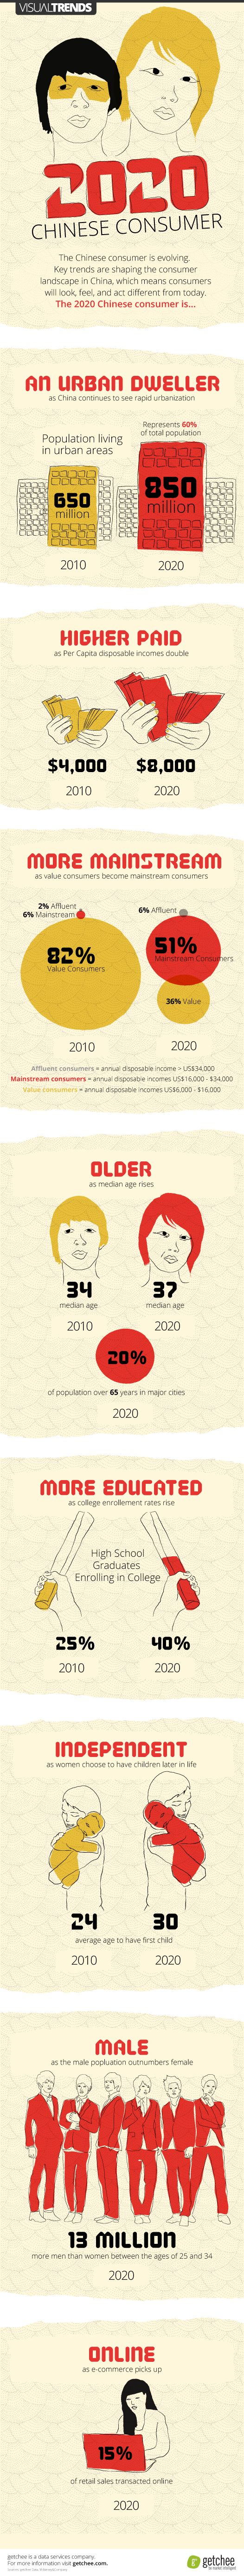 The Future Chinese Consumer - Infographic